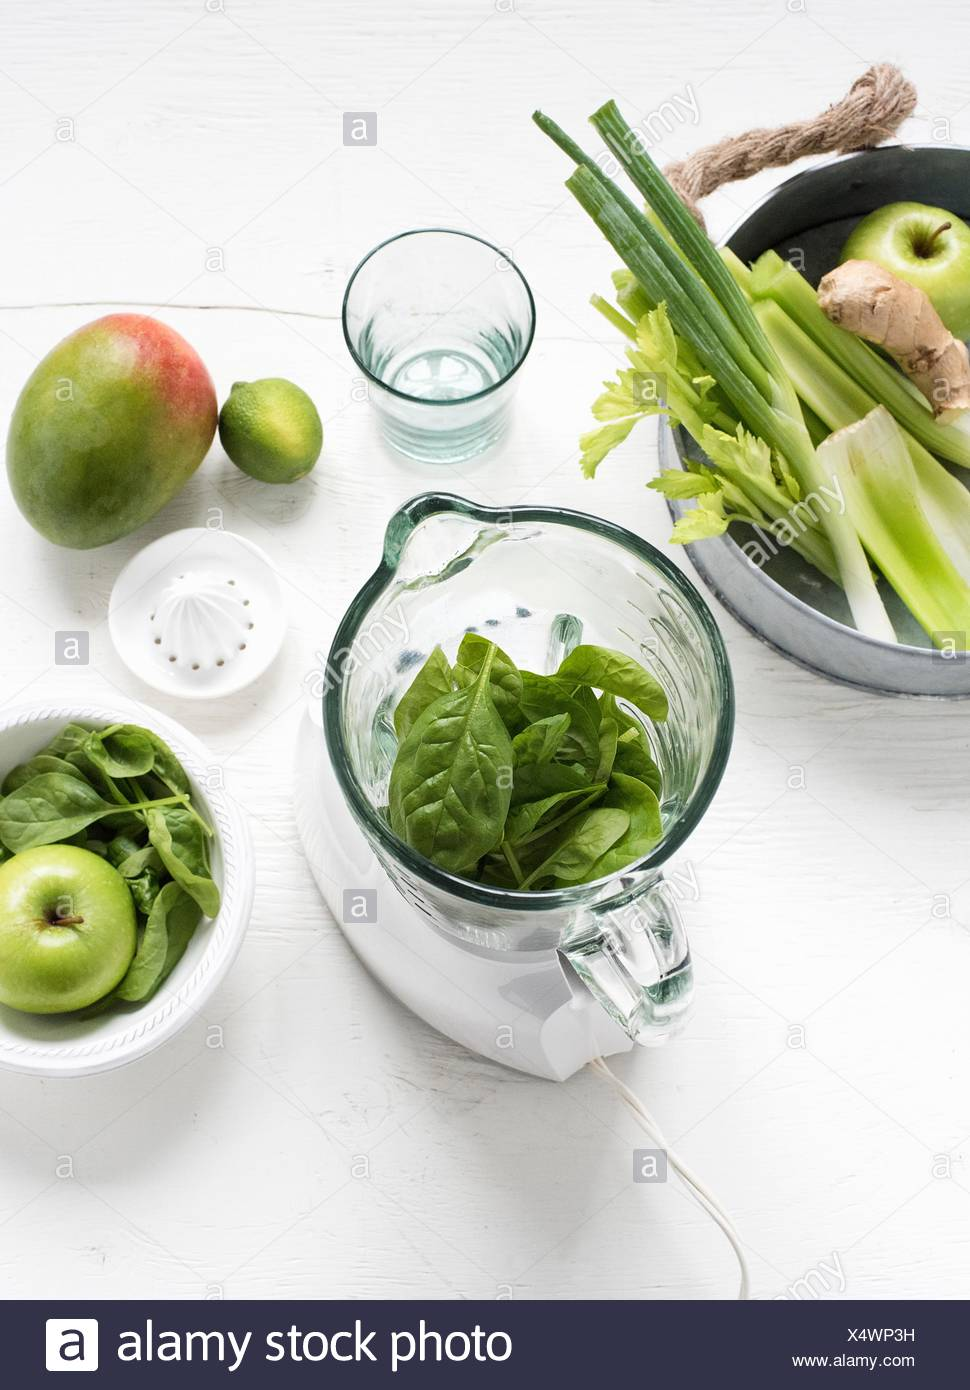 Blender with fresh green fruits and vegetables Stock Photo